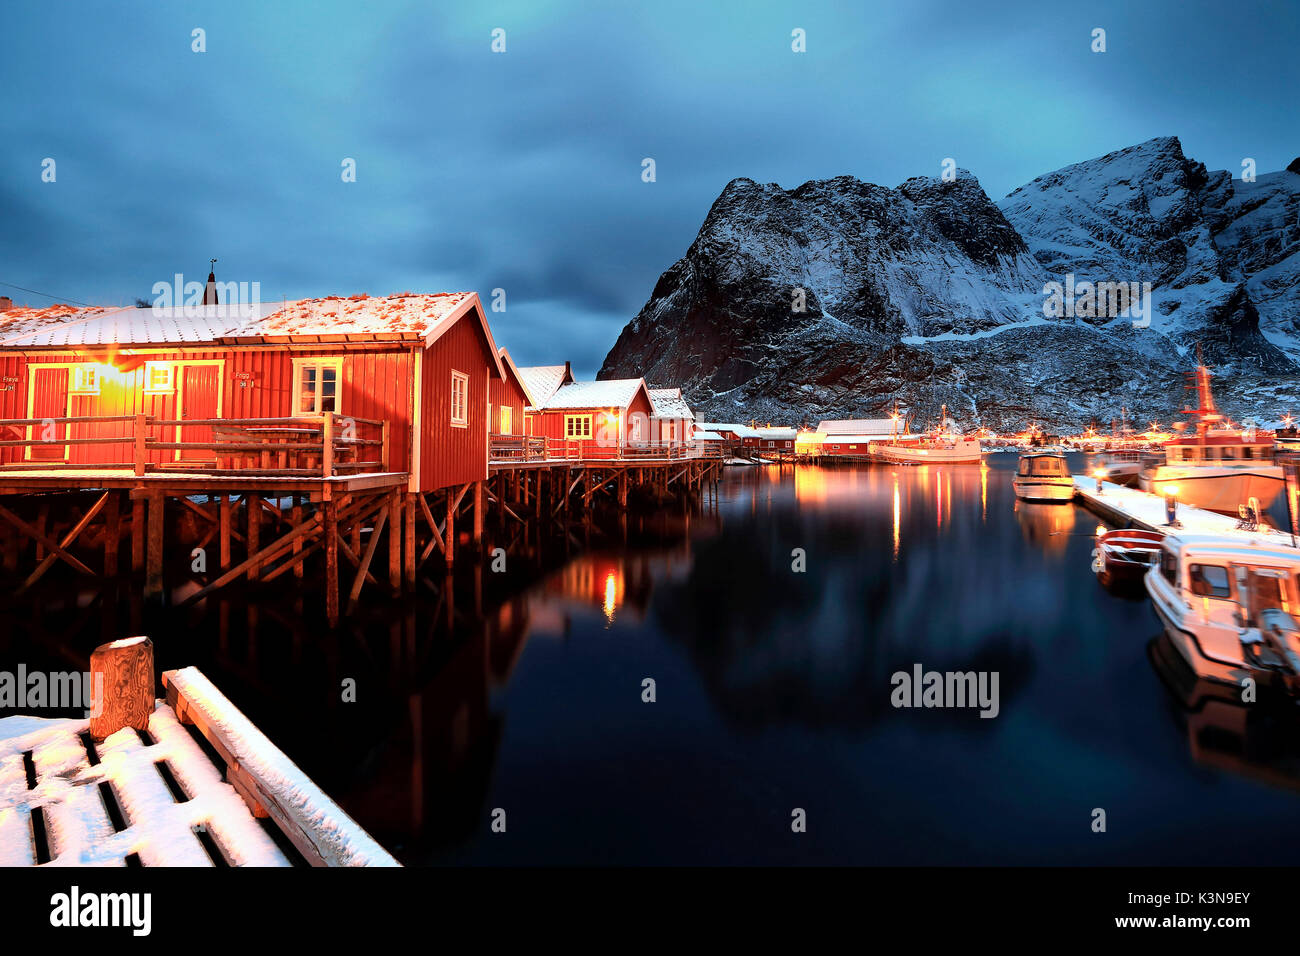 Fishermans village of Reine, Lofoten Islands, Norway, Europe - Stock Image